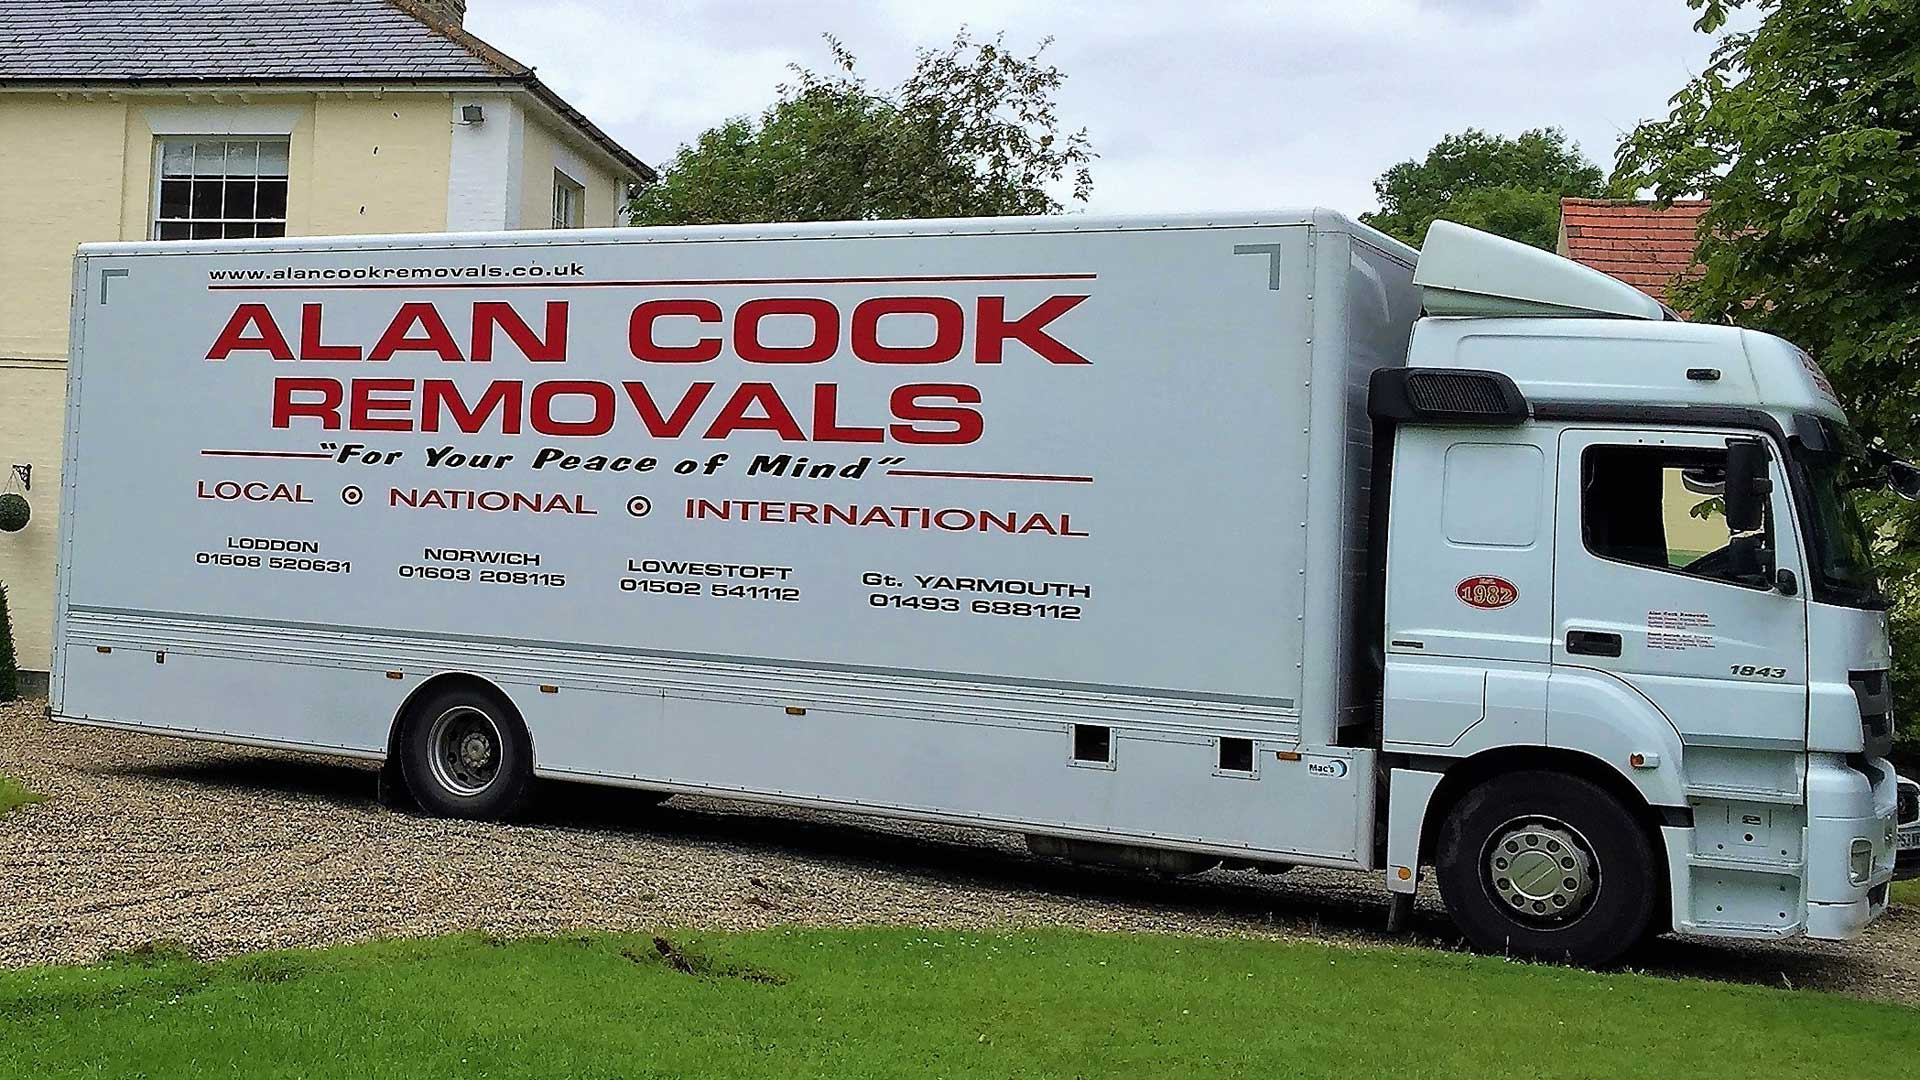 - Alan Cook Removals - Of all the Norwich Removals Companies we pride ourselves in offering the most prfessional, 